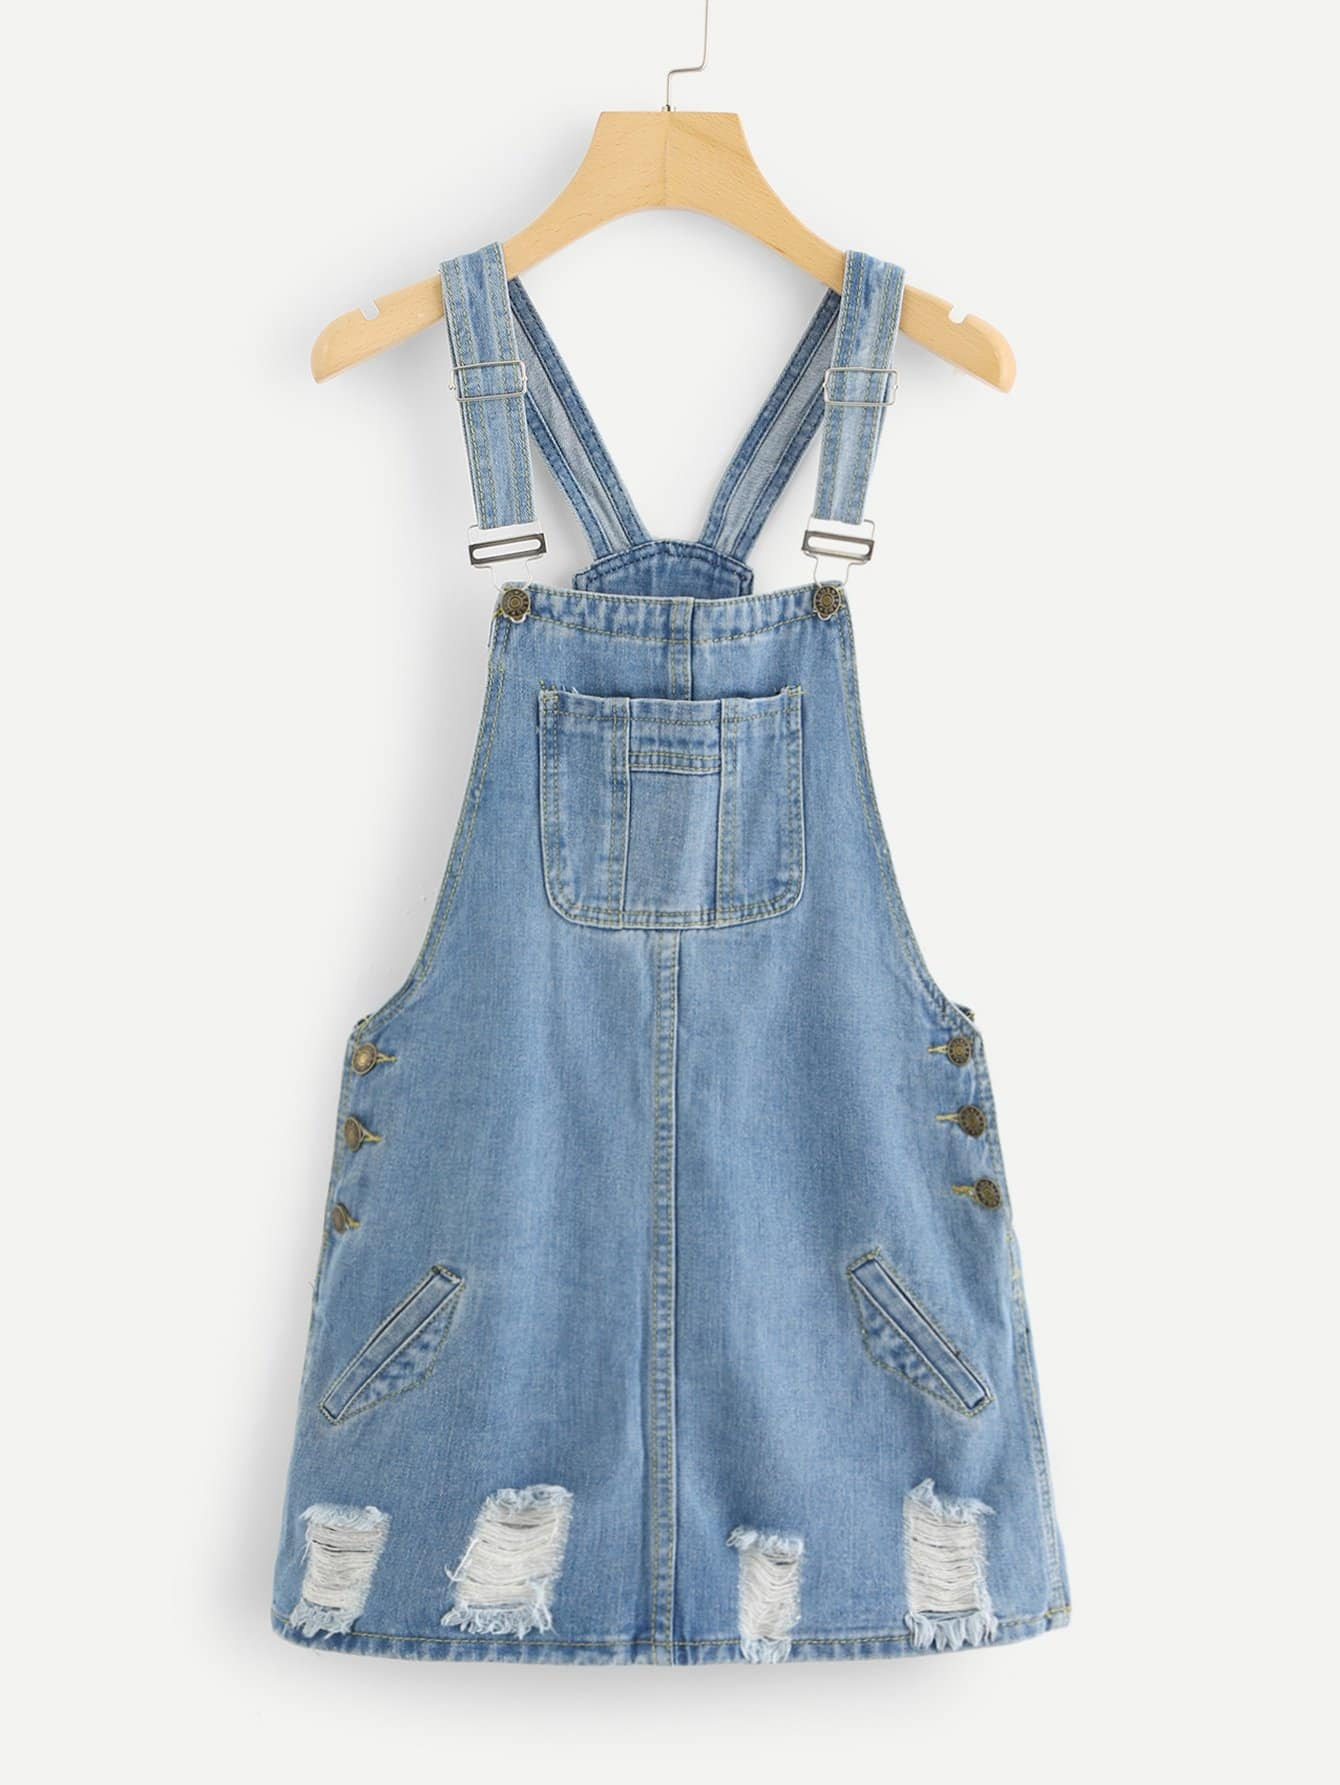 Ripped Denim Overall Dresss overall yumi overall